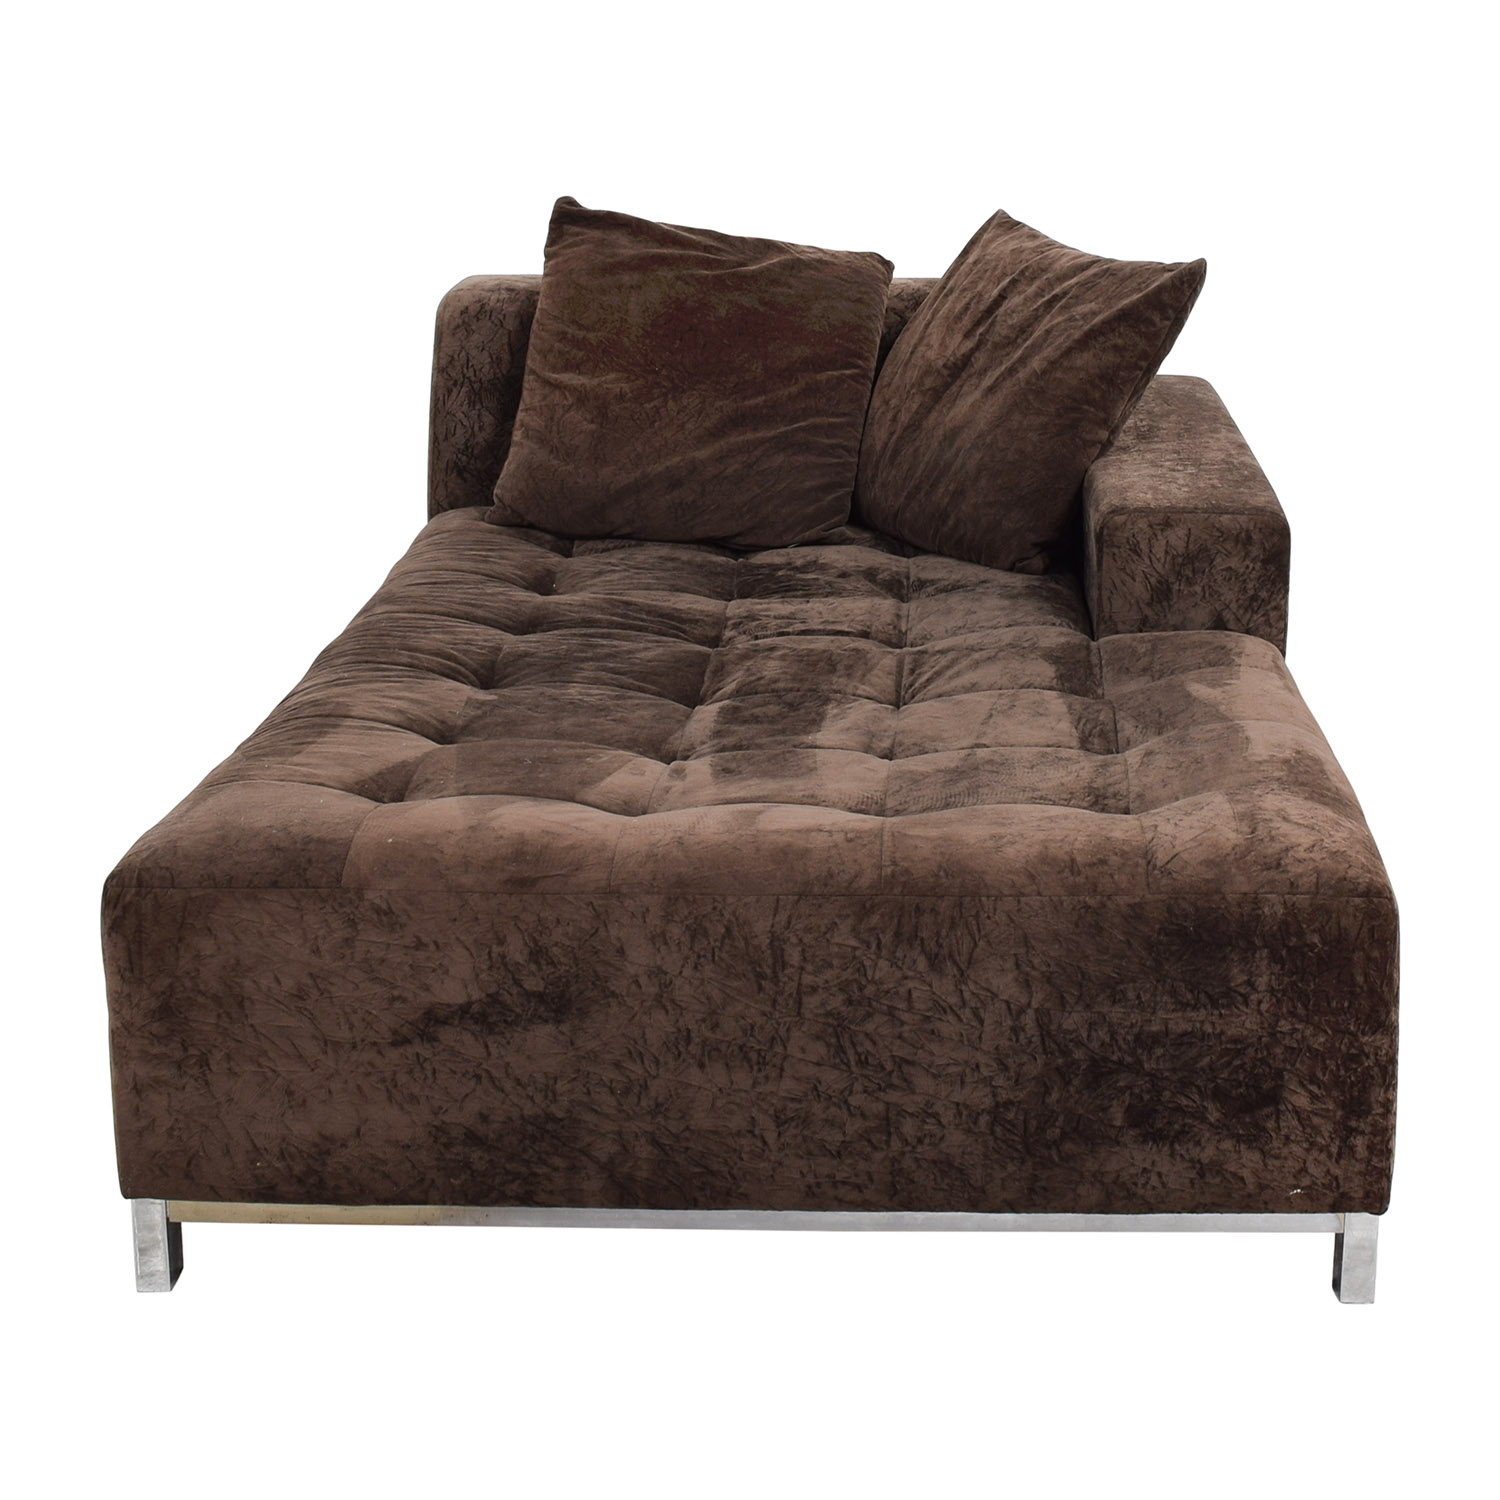 Safaviah Safaviah Brown Tuifted Chaise Lounge second hand